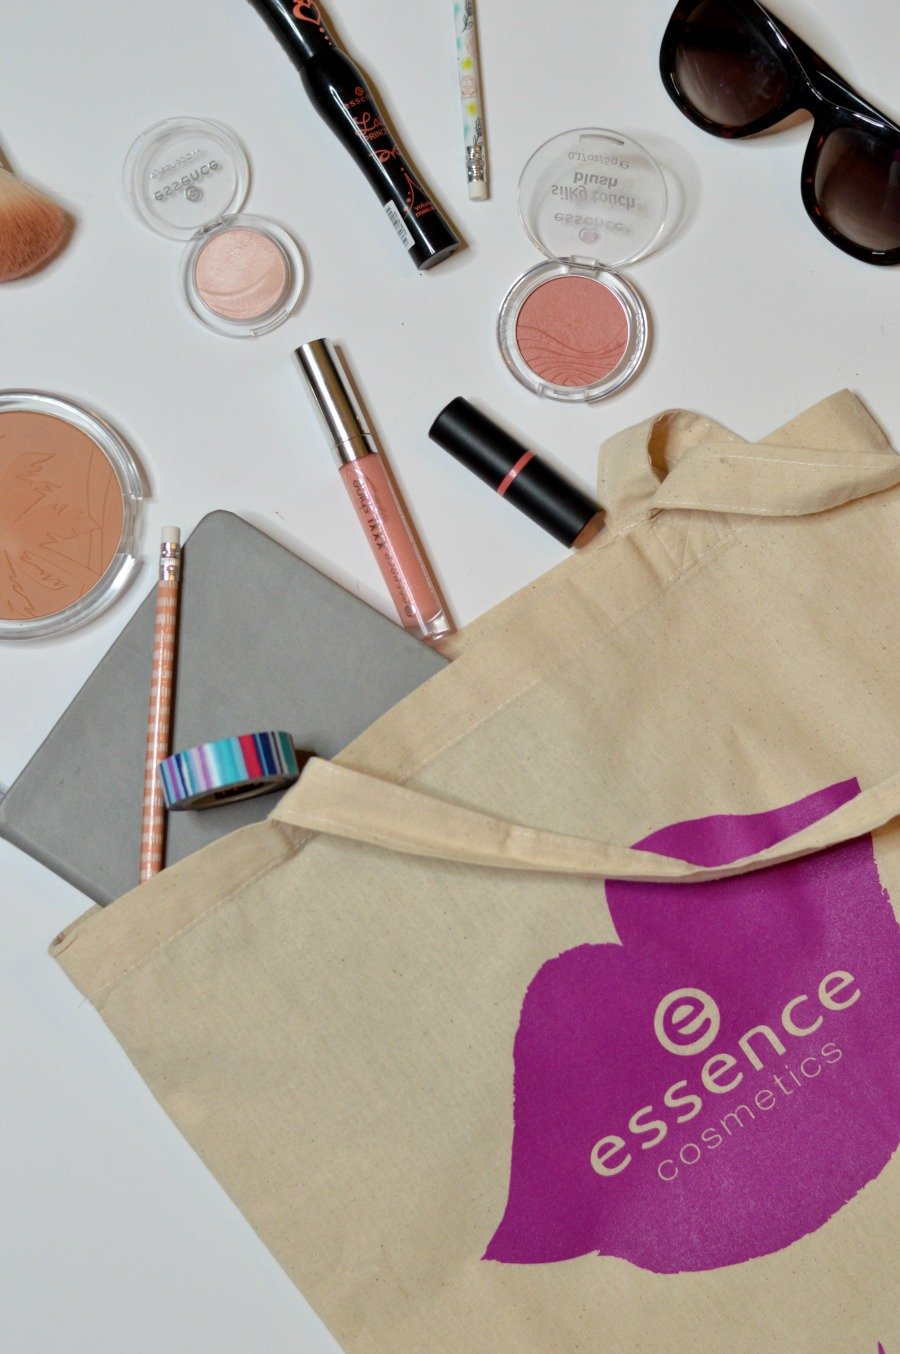 Simple & Quick 10-Minute Back-To-School Makeup tutorial, because every girl wants to look put together without having to take a ton of time to get ready! Ideal tutorial for the college gal, featuring super affordable beauty products found at Target // Hey There, Chelsie #essenceEssentials #essenceAtTarget #ad